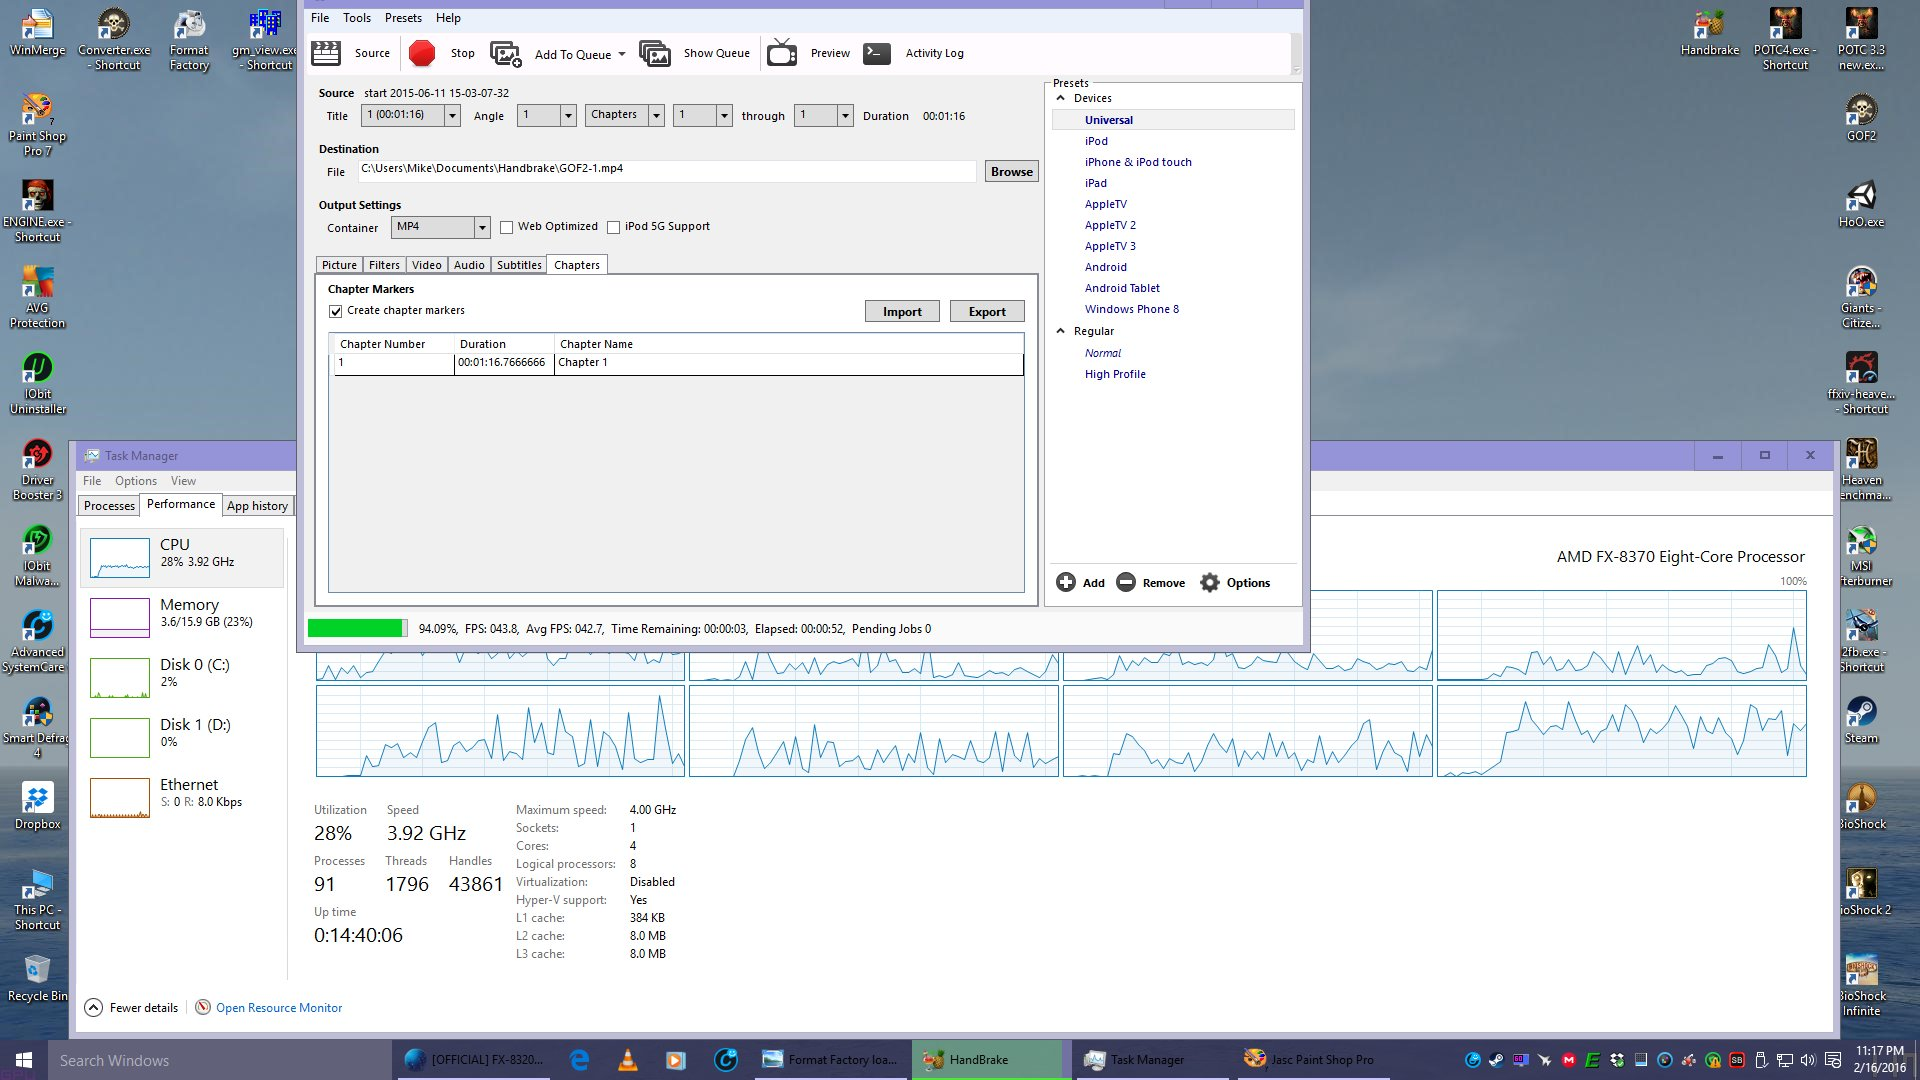 Obs Studio And Fx 8 Cores An Overclocking Community Prosesor Amd 8370e Ampquotvisheraampquot Then There Is The Intel Gimp Which Still Present Despite All Claims To Contrary Handbrake Before After Icc Patcher